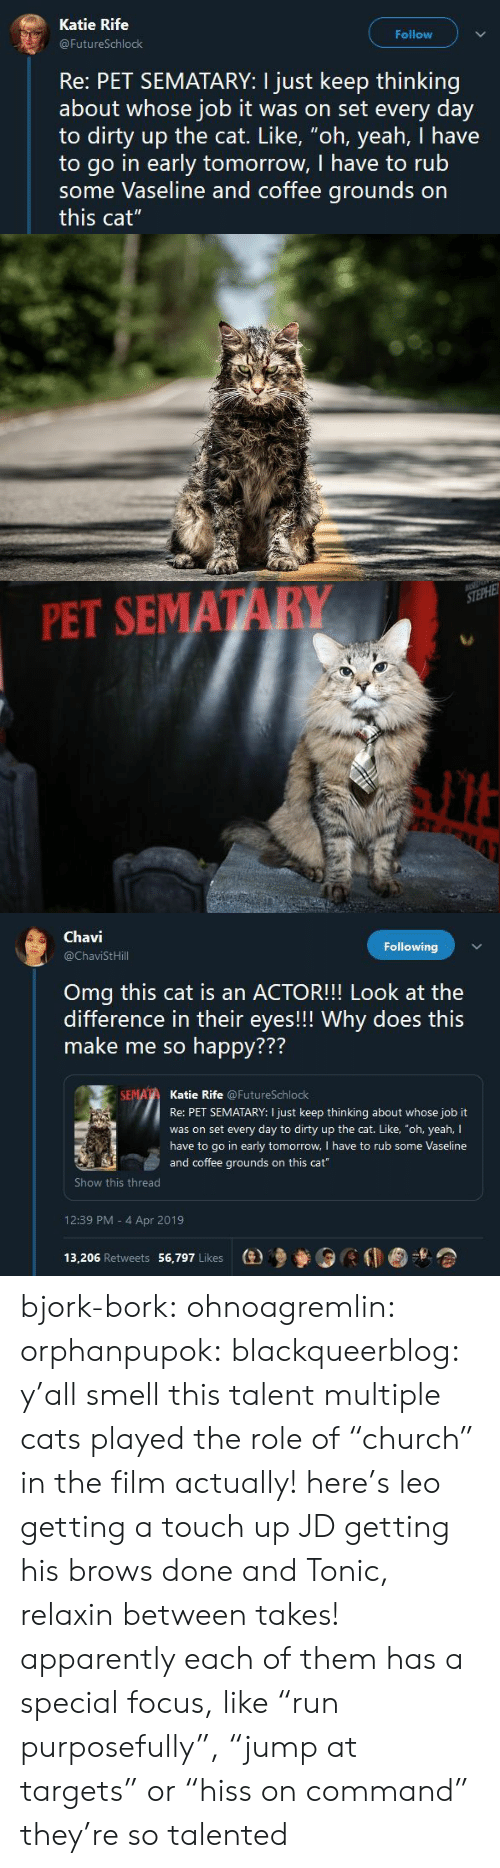 "Apparently, Cats, and Omg: Katie Rife  Follow  FutureSchlock  Re: PET SEMATARY: I just keep thinking  about whose job it was on set every day  to dirty up the cat. Like, ""oh, yeah, I have  to go in early tomorrow, I have to rub  some Vaseline and coffee grounds on  this cat""   PET SEMATARY   Chavi  @ChaviStHill  Following  Omg this cat is an ACTOR!!! Look at the  difference in their eyes!!! Why does this  make me so happy???  772  Katie Rife @FutureSchlock  Re: PET SEMATARY: I just keep thinking about whose job it  was on set every day to dirty up the cat. Like, ""oh, yeah, I  have to go in early tomorrow, I have to rub some Vaseline  and coffee grounds on this cat  Show this thread  12:39 PM - 4 Apr 2019  13,206 Retweets 56,797 Likes  (e)乡參0 bjork-bork:  ohnoagremlin:  orphanpupok:  blackqueerblog: y'all smell this talent  multiple cats played the role of ""church"" in the film actually! here's leo getting a touch up JD getting his brows done and Tonic, relaxin between takes!   apparently each of them has a special focus, like ""run purposefully"", ""jump at targets"" or ""hiss on command"" they're so talented"